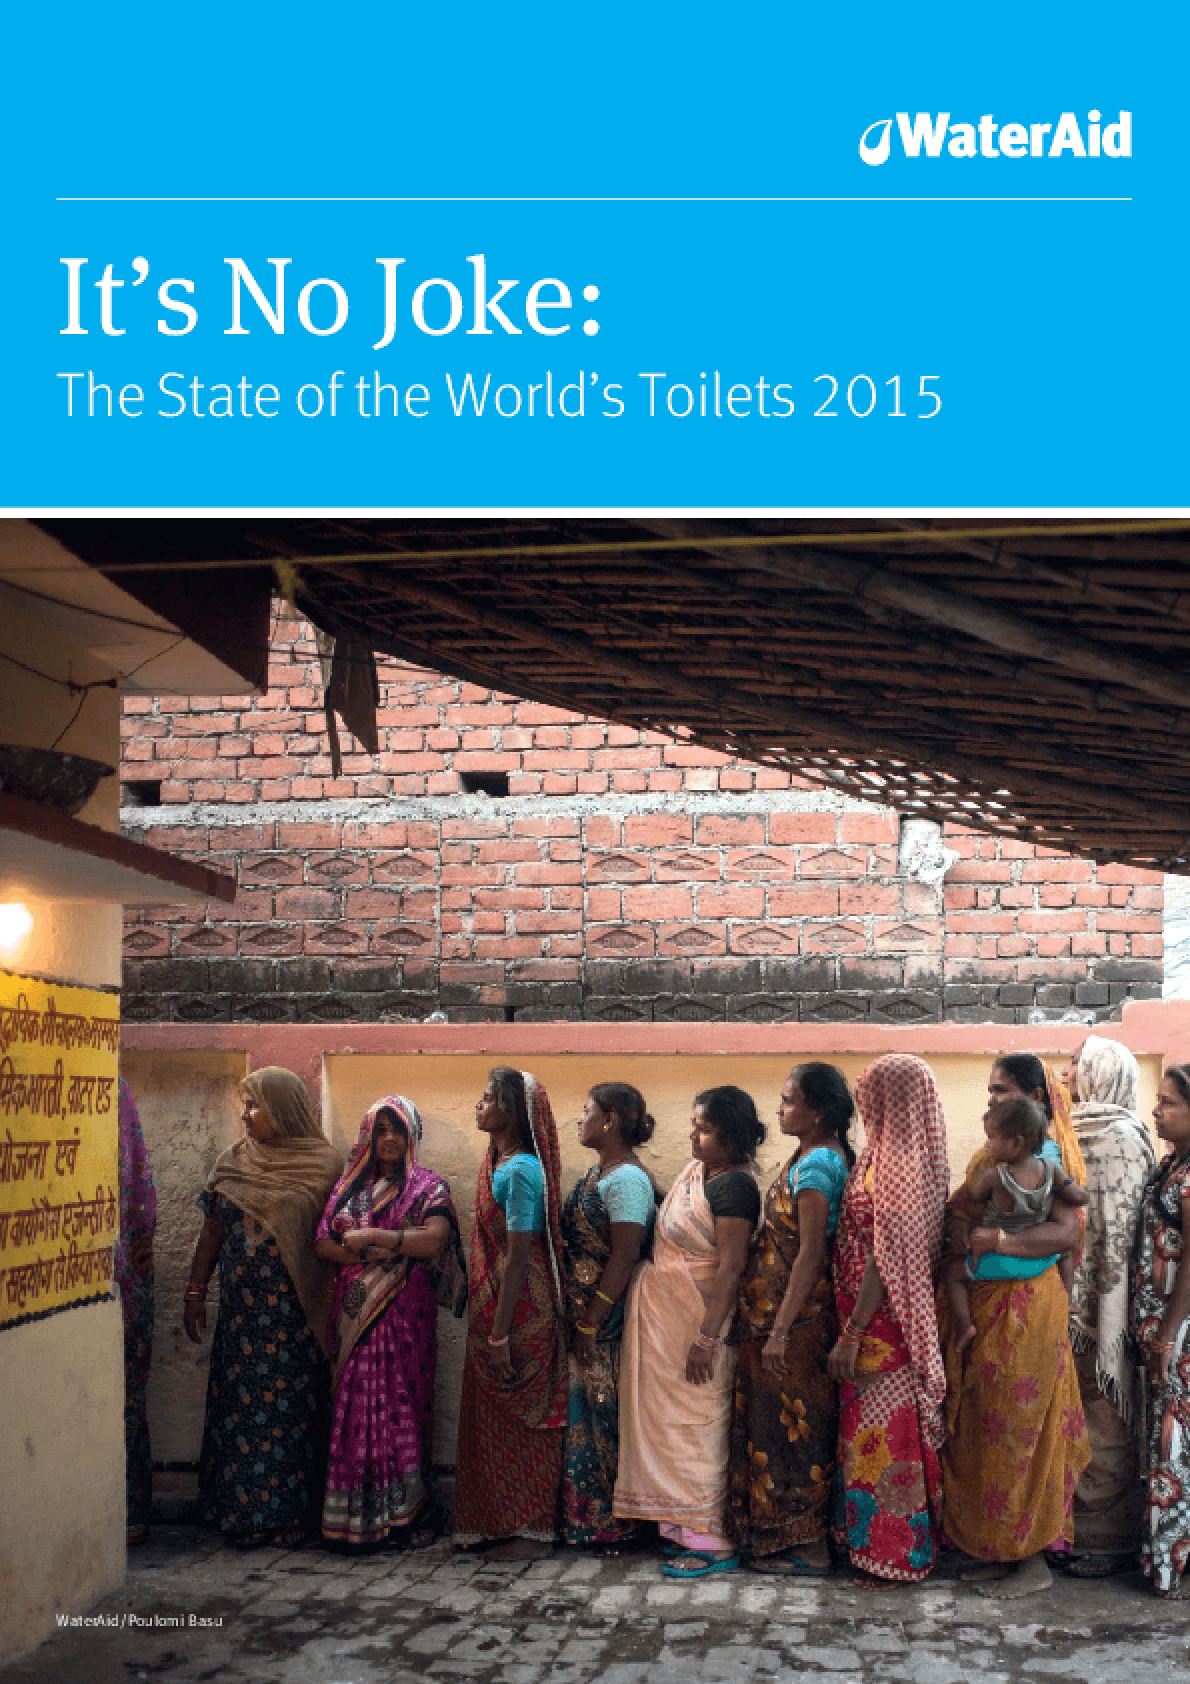 It's No Joke: The State of the World's Toilets 2015